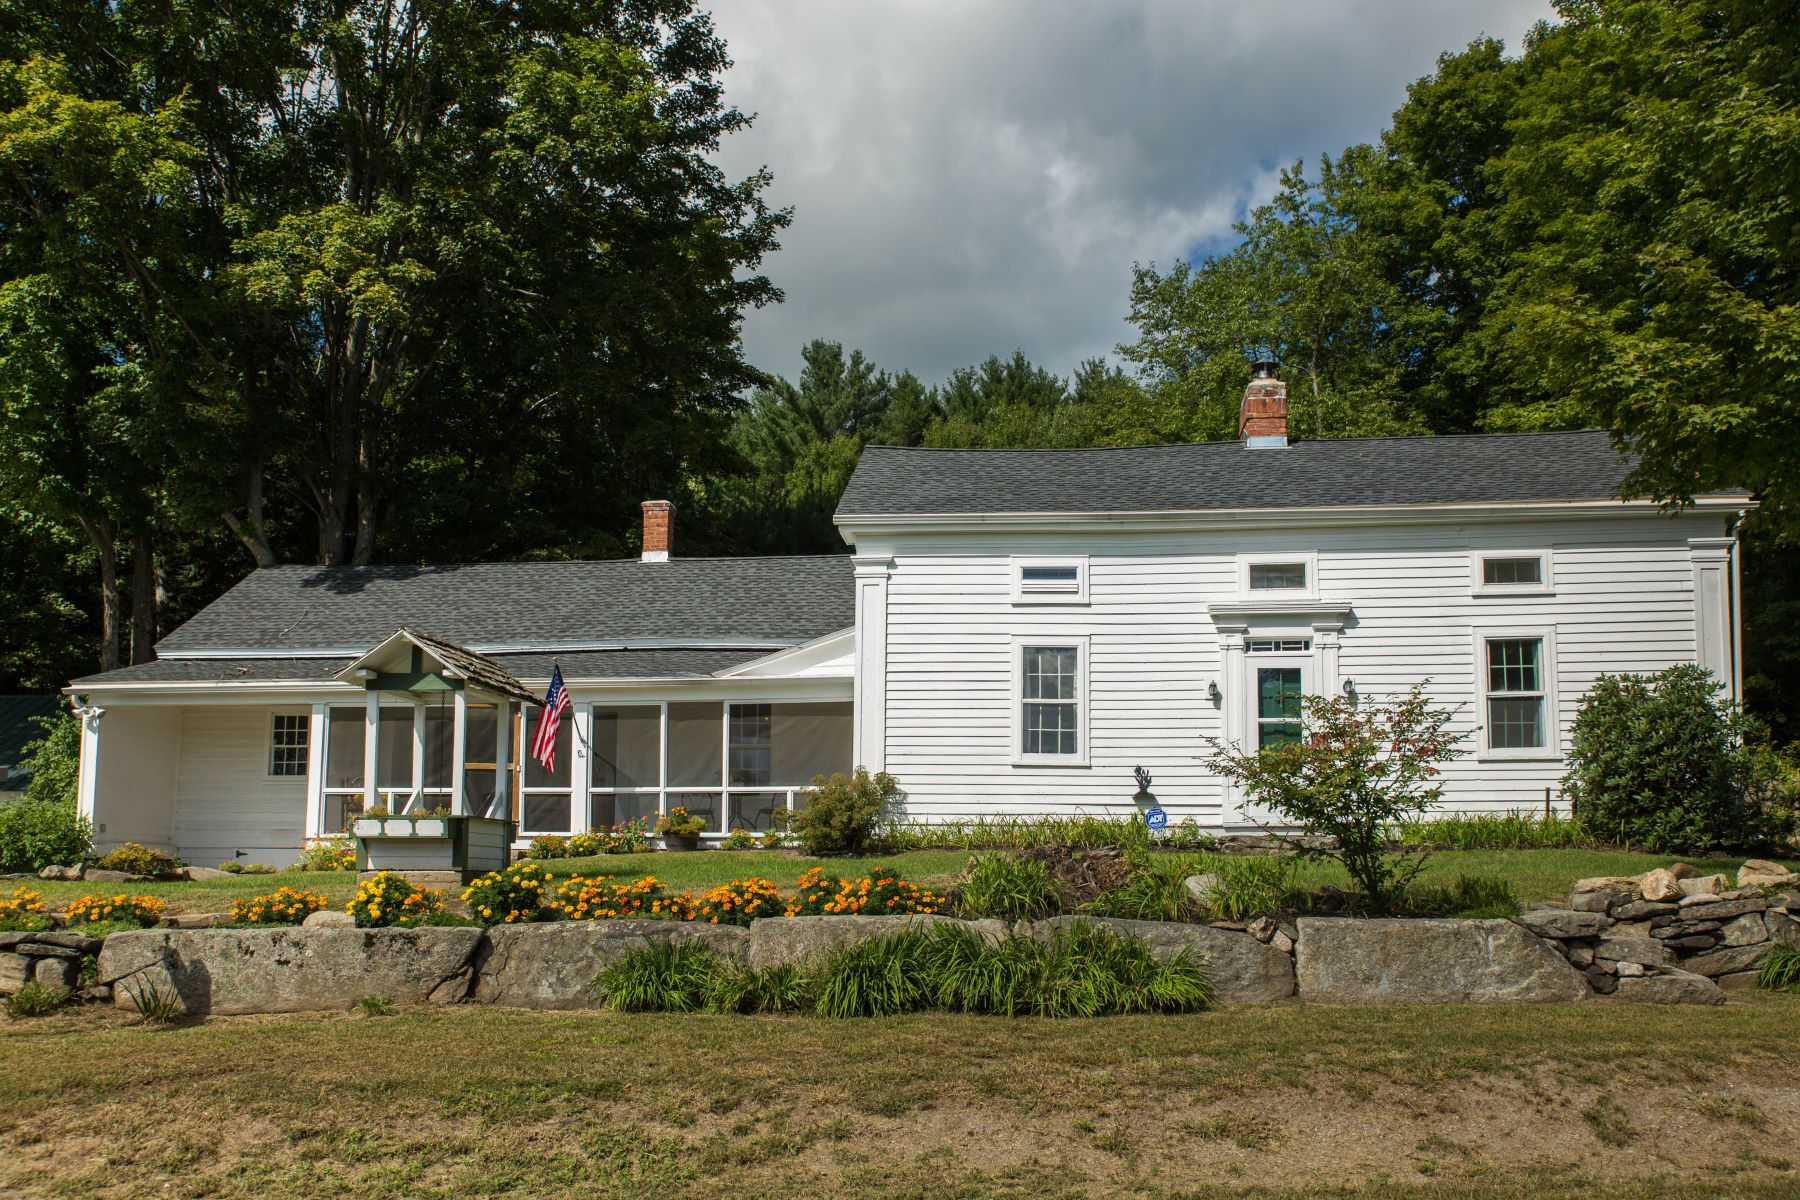 Single Family Homes for Active at Renovated Farmhouse in Lake Luzerne 163 Scofield Rd Lake Luzerne, New York 12846 United States